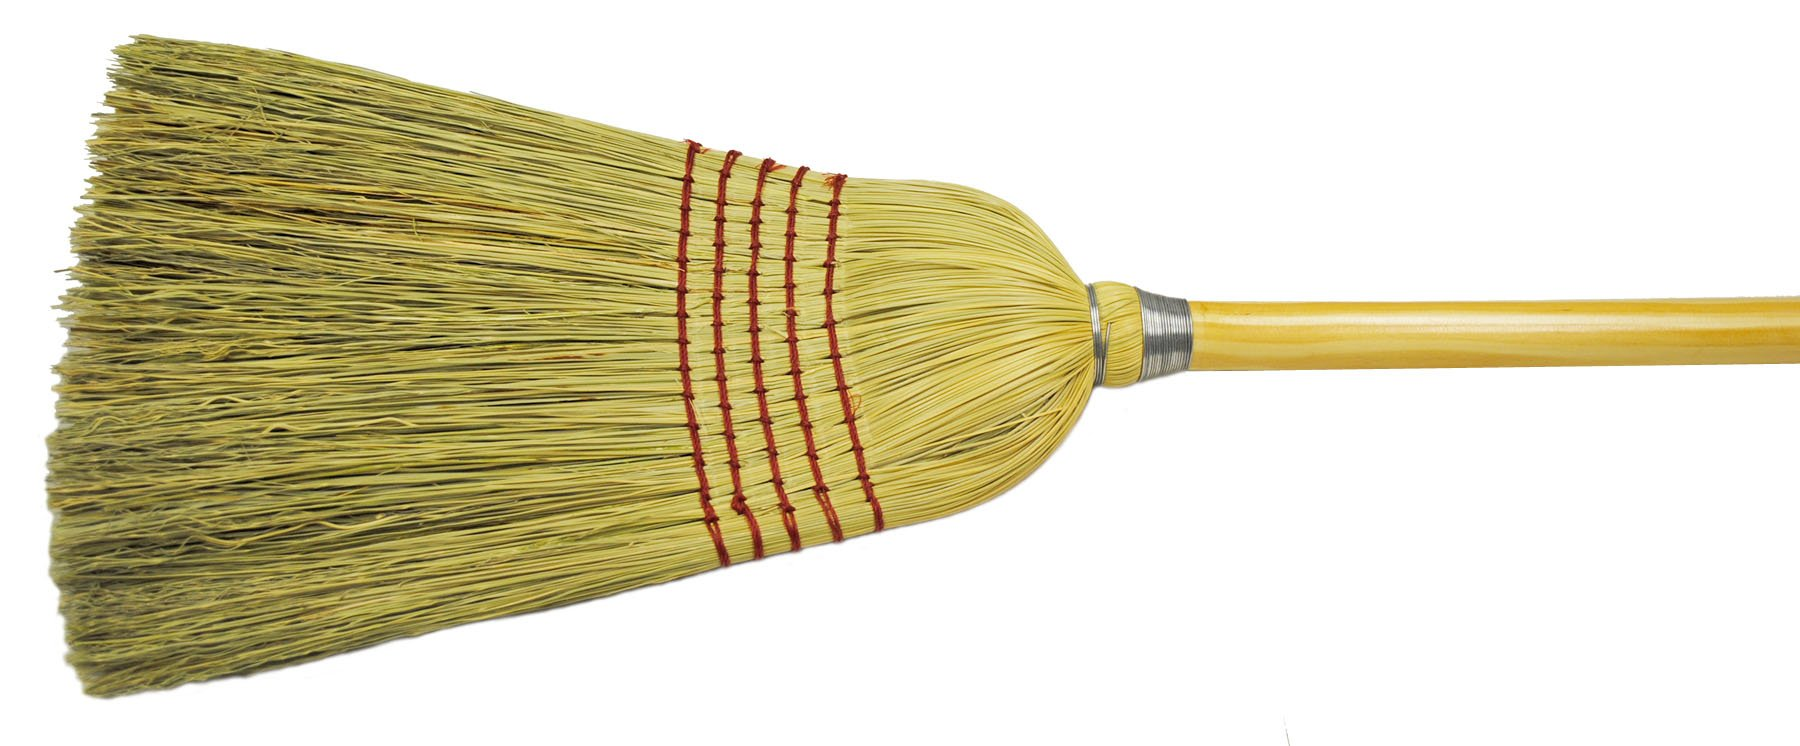 Weiler 70308 Corn Fiber Janitor Upright Broom with Wood Handle, 1-1/2'' Head Width, 57'' Overall Length, Natural by Weiler (Image #1)